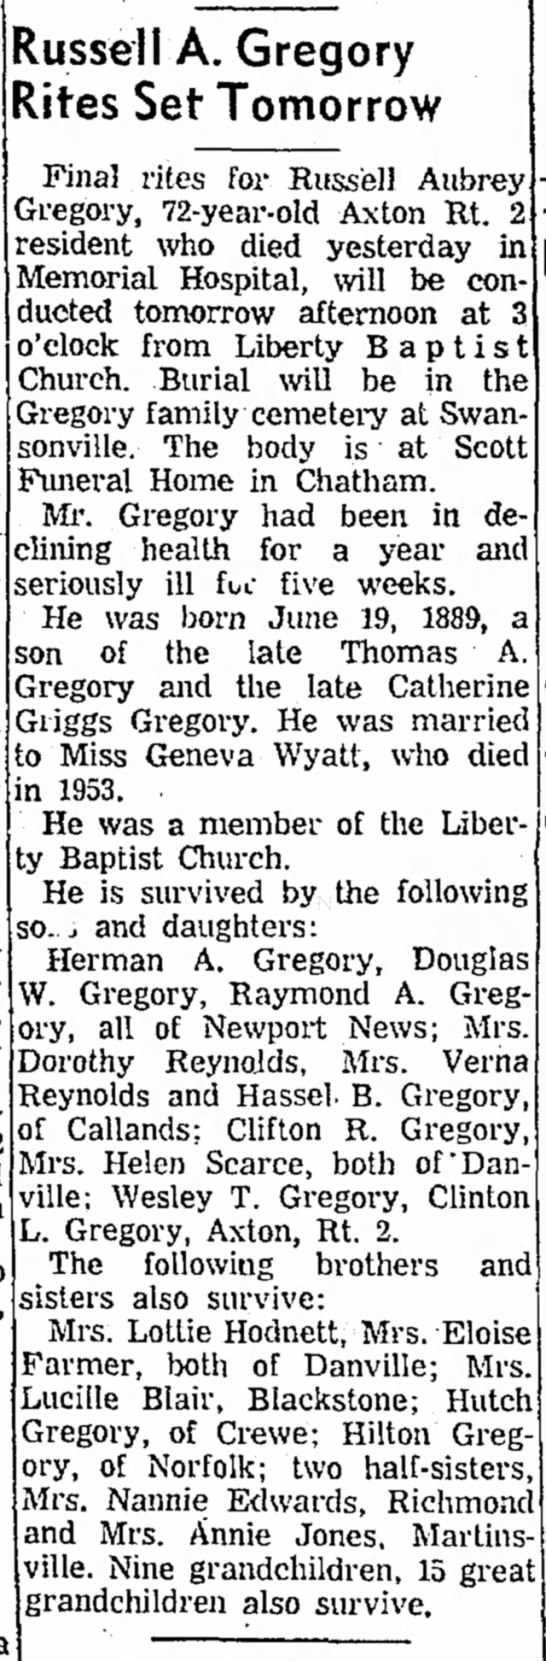 Russell Aubrey Gregory - Obit Oct1961 - died and in of and Russell A. Gregory Rites Set...